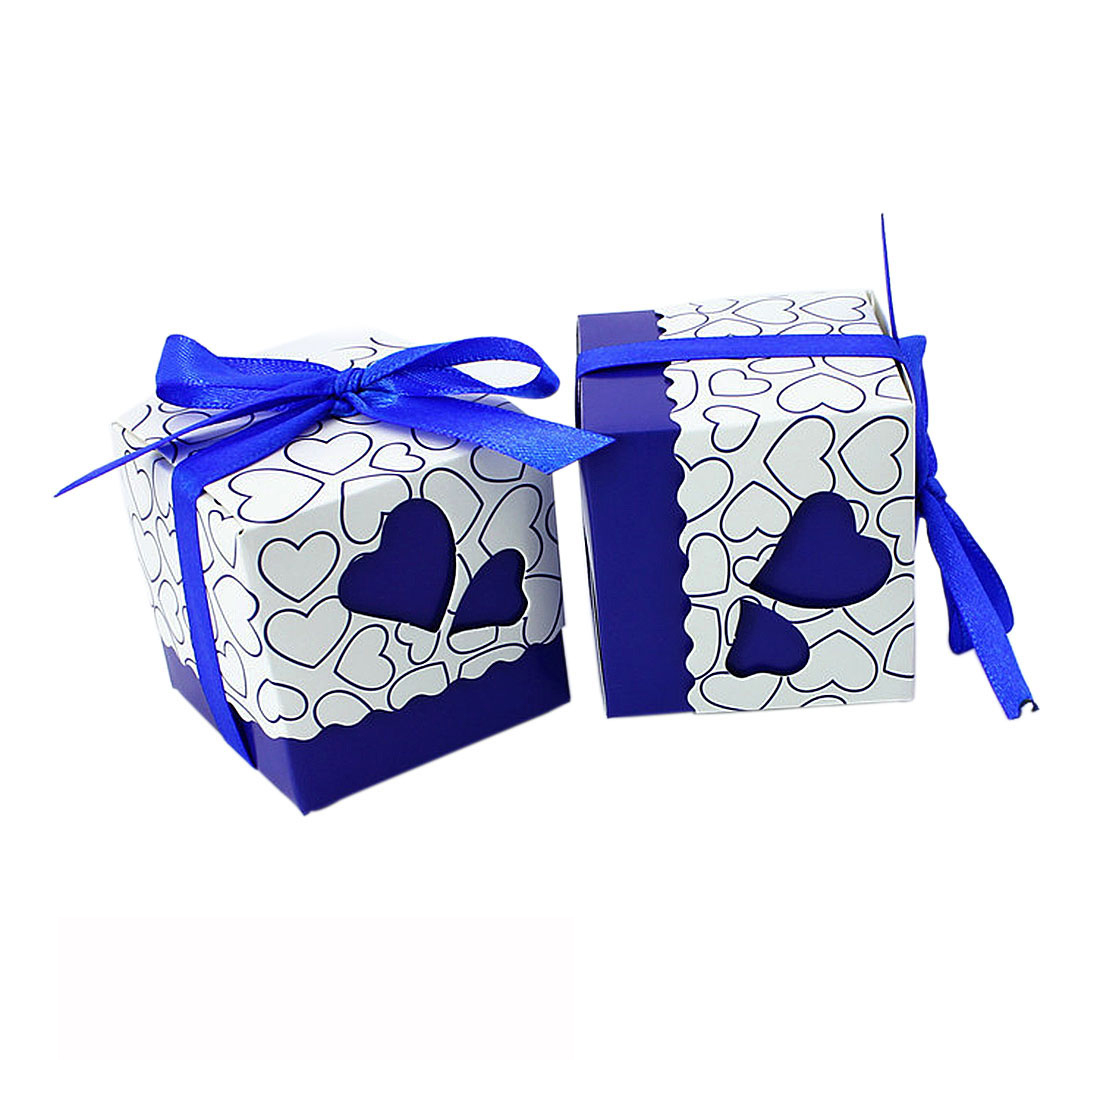 50Pcs European Style Love Heart Pattern Favor Candy Box Gift Box with Ribbon DIY Wedding Party Baby Shower - Dark Blue